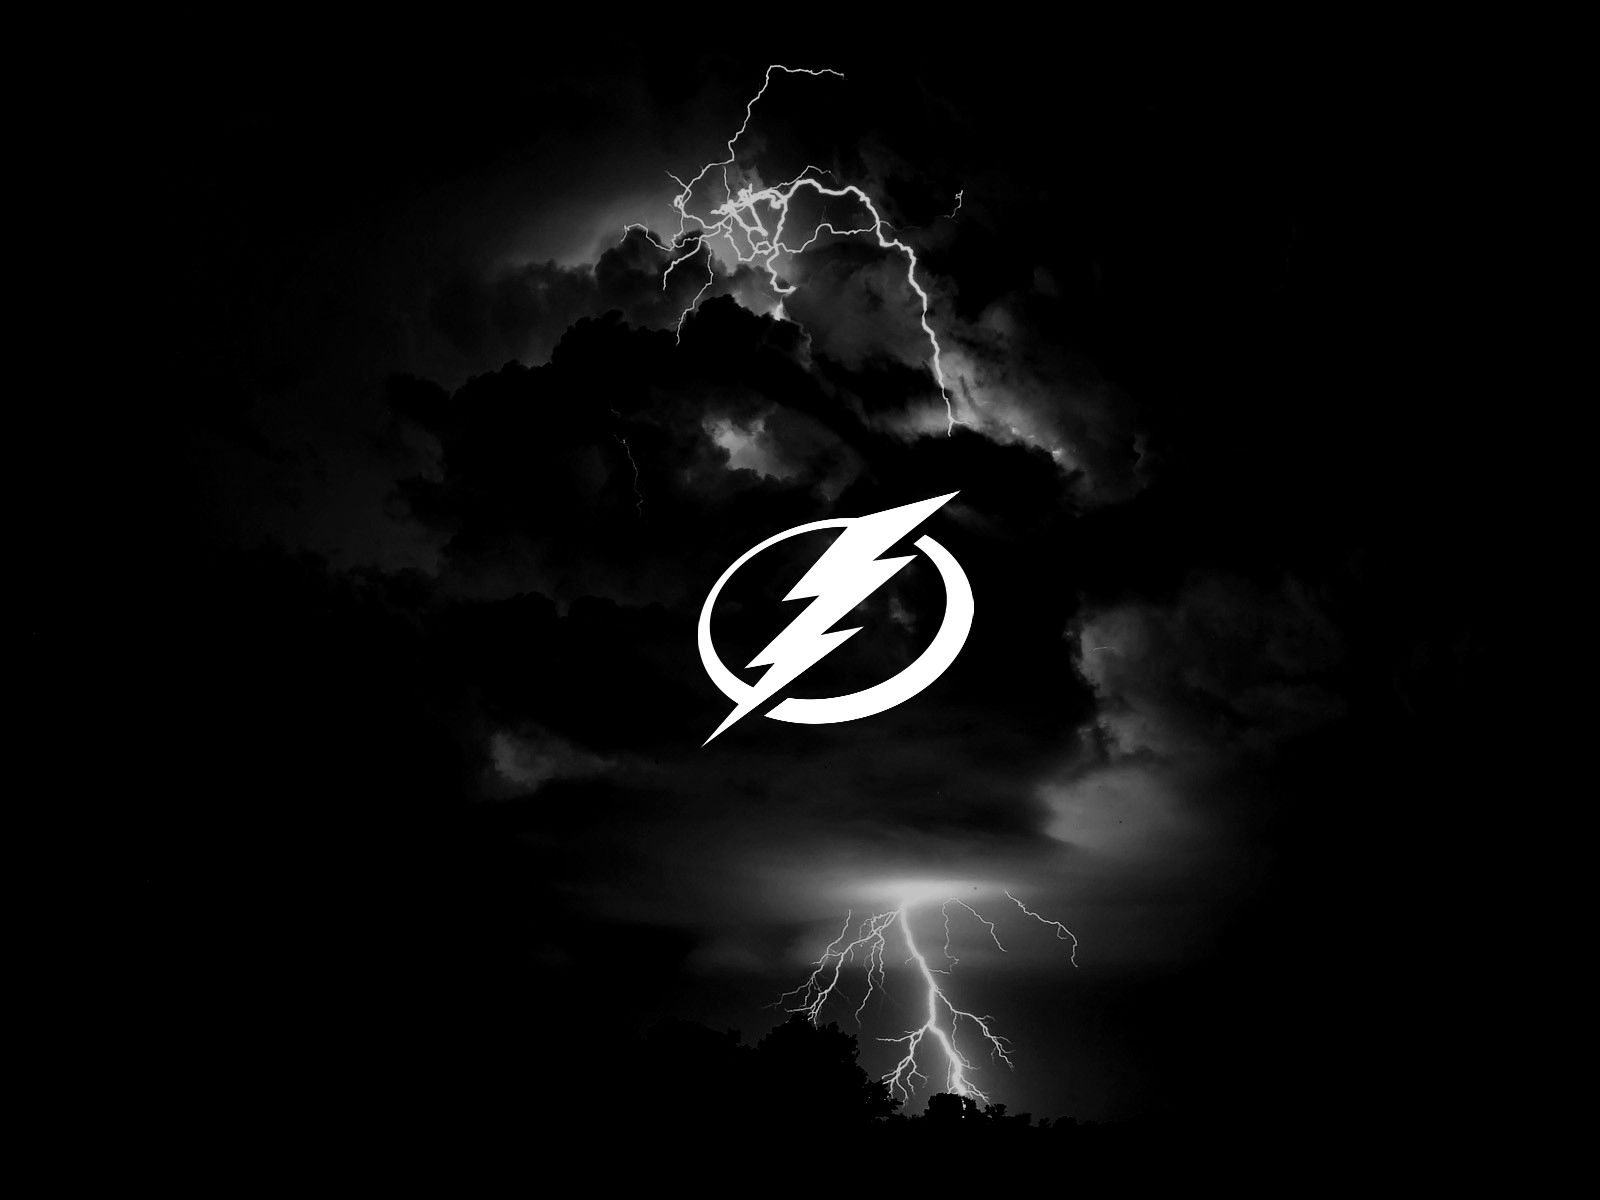 hd lightning wallpaper | hd wallpapers | pinterest | tampa bay lightning